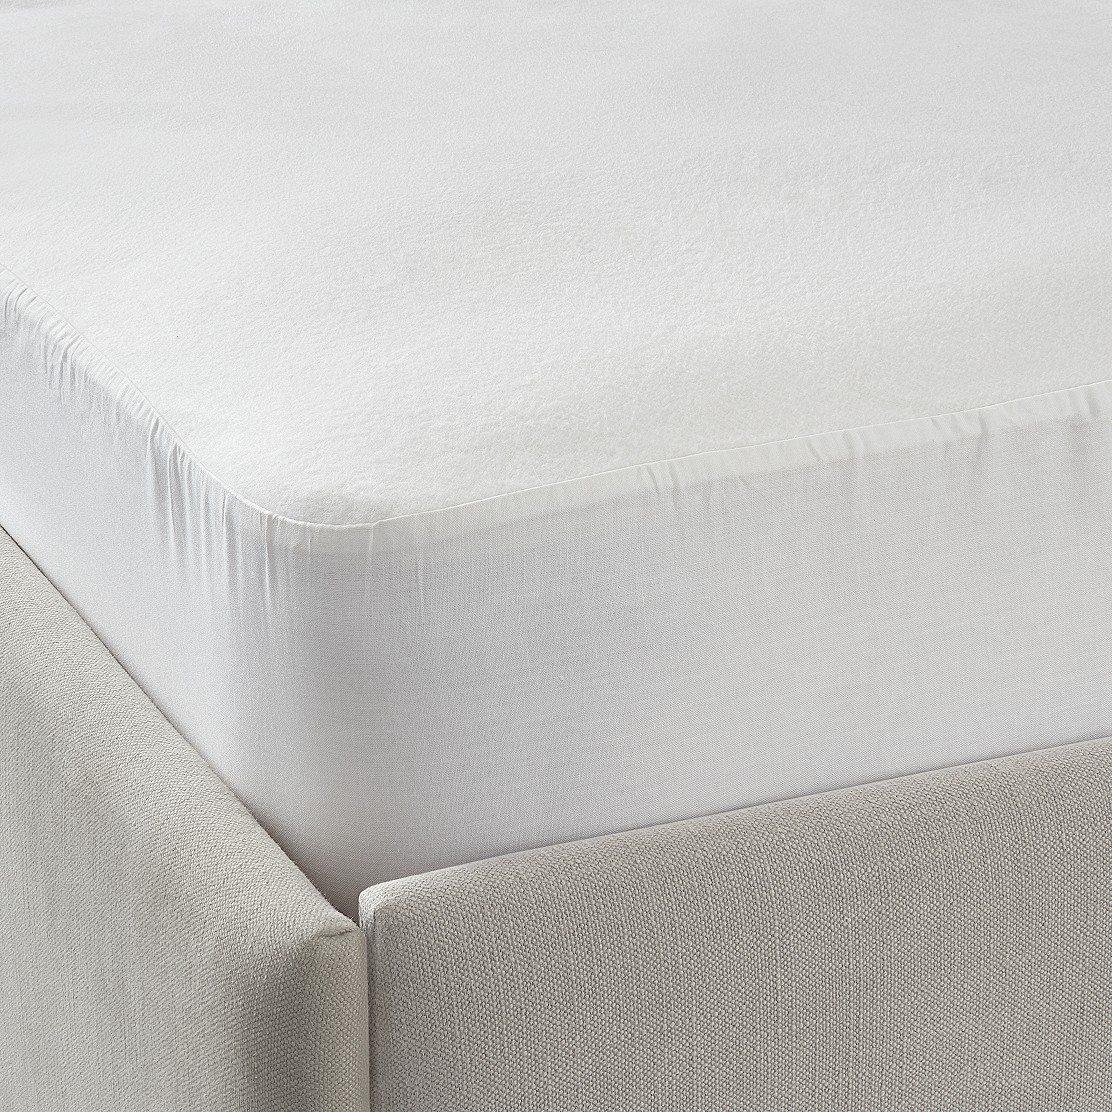 Waterproof Mattress Protector Toppers